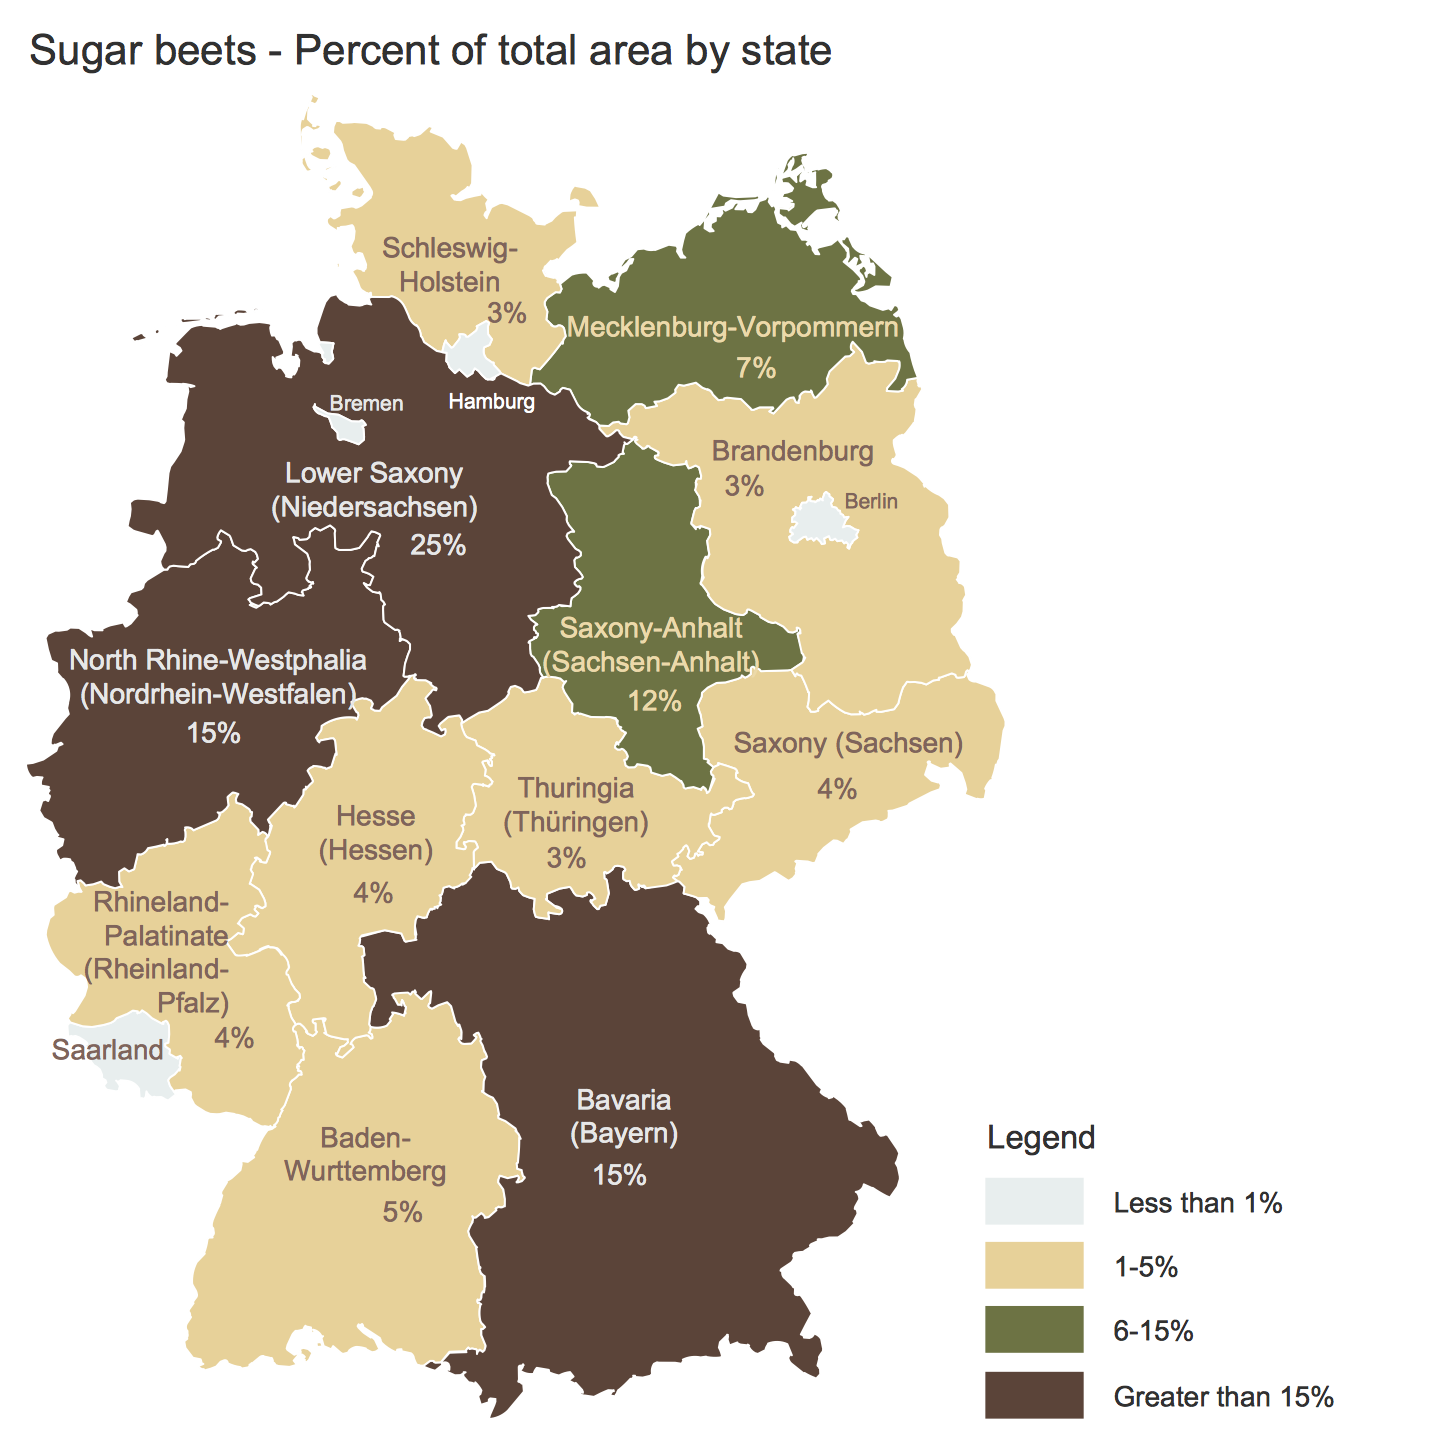 Germany Map - Crop Areas Map Sugar Beets